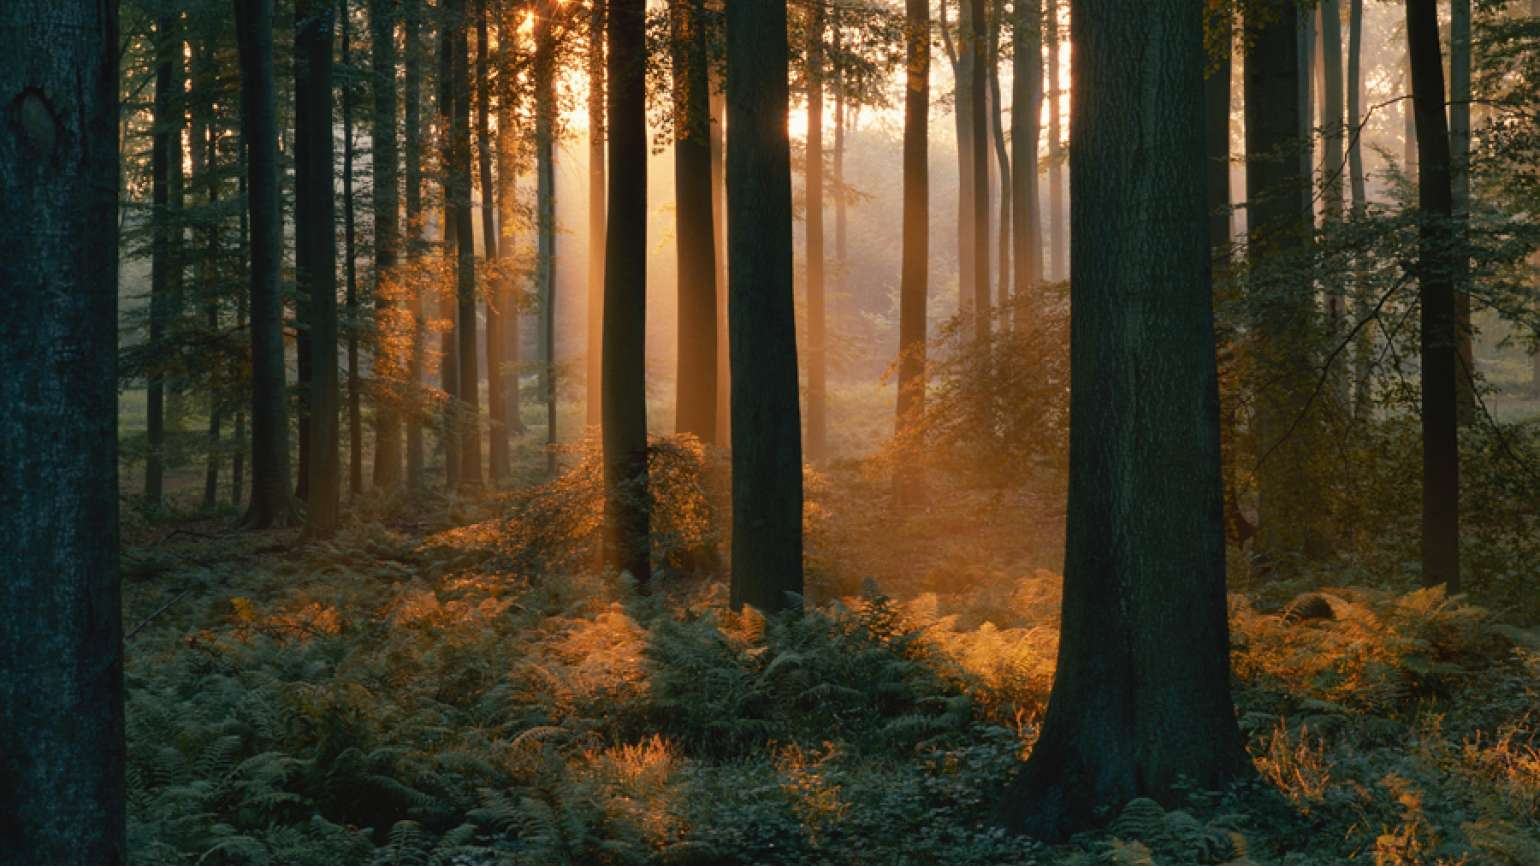 Heavenly streams of light brighten a woodsy setting.